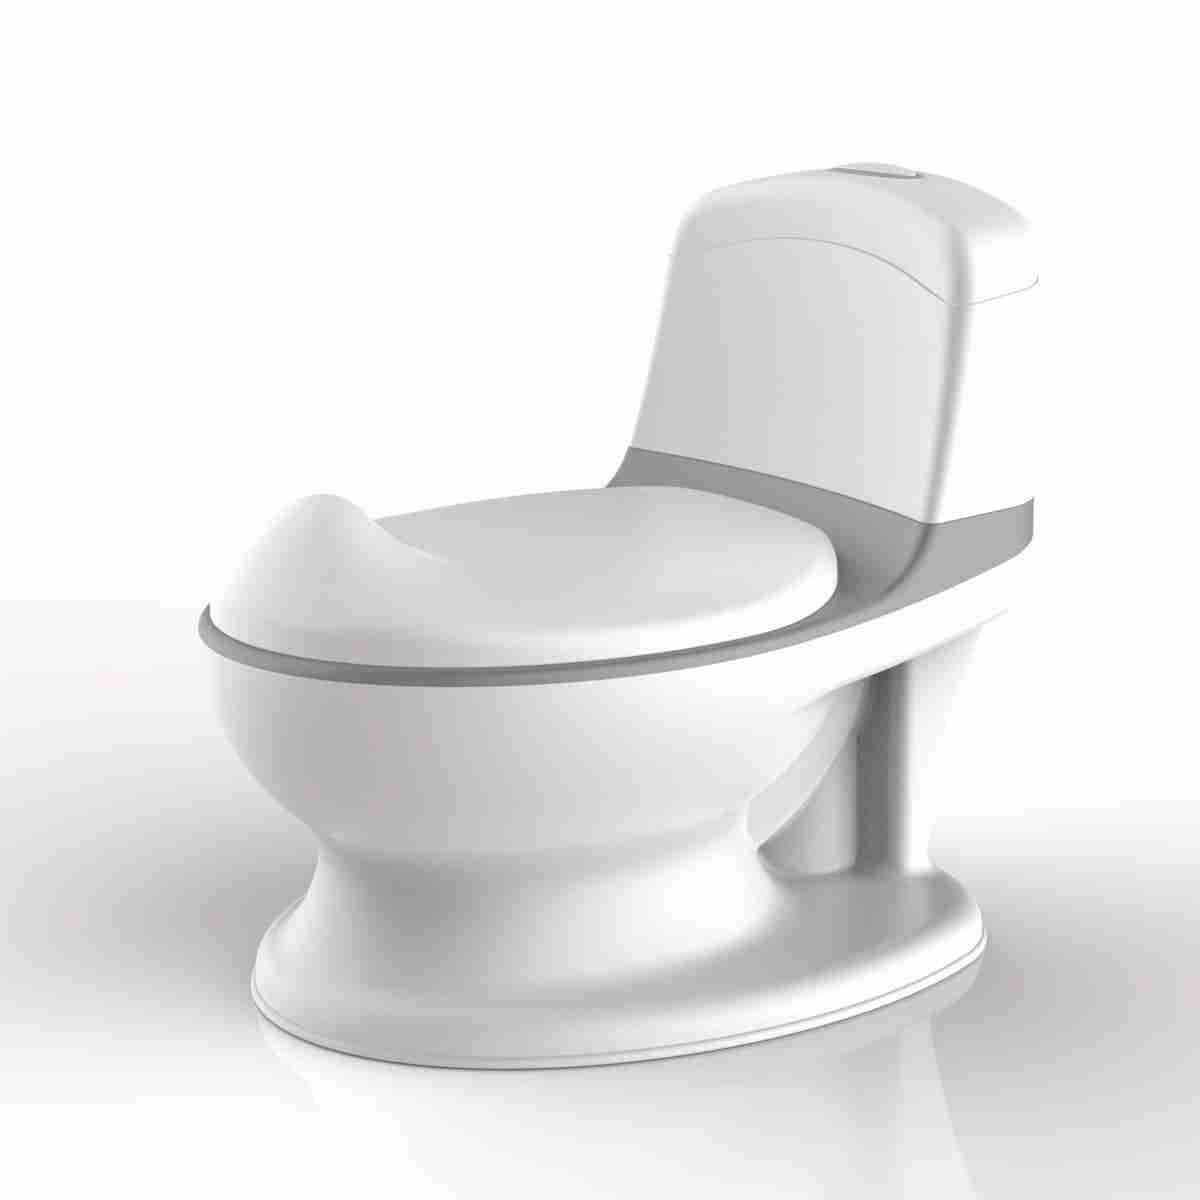 The Pote Plus features a cistern design making it a miniture toilet